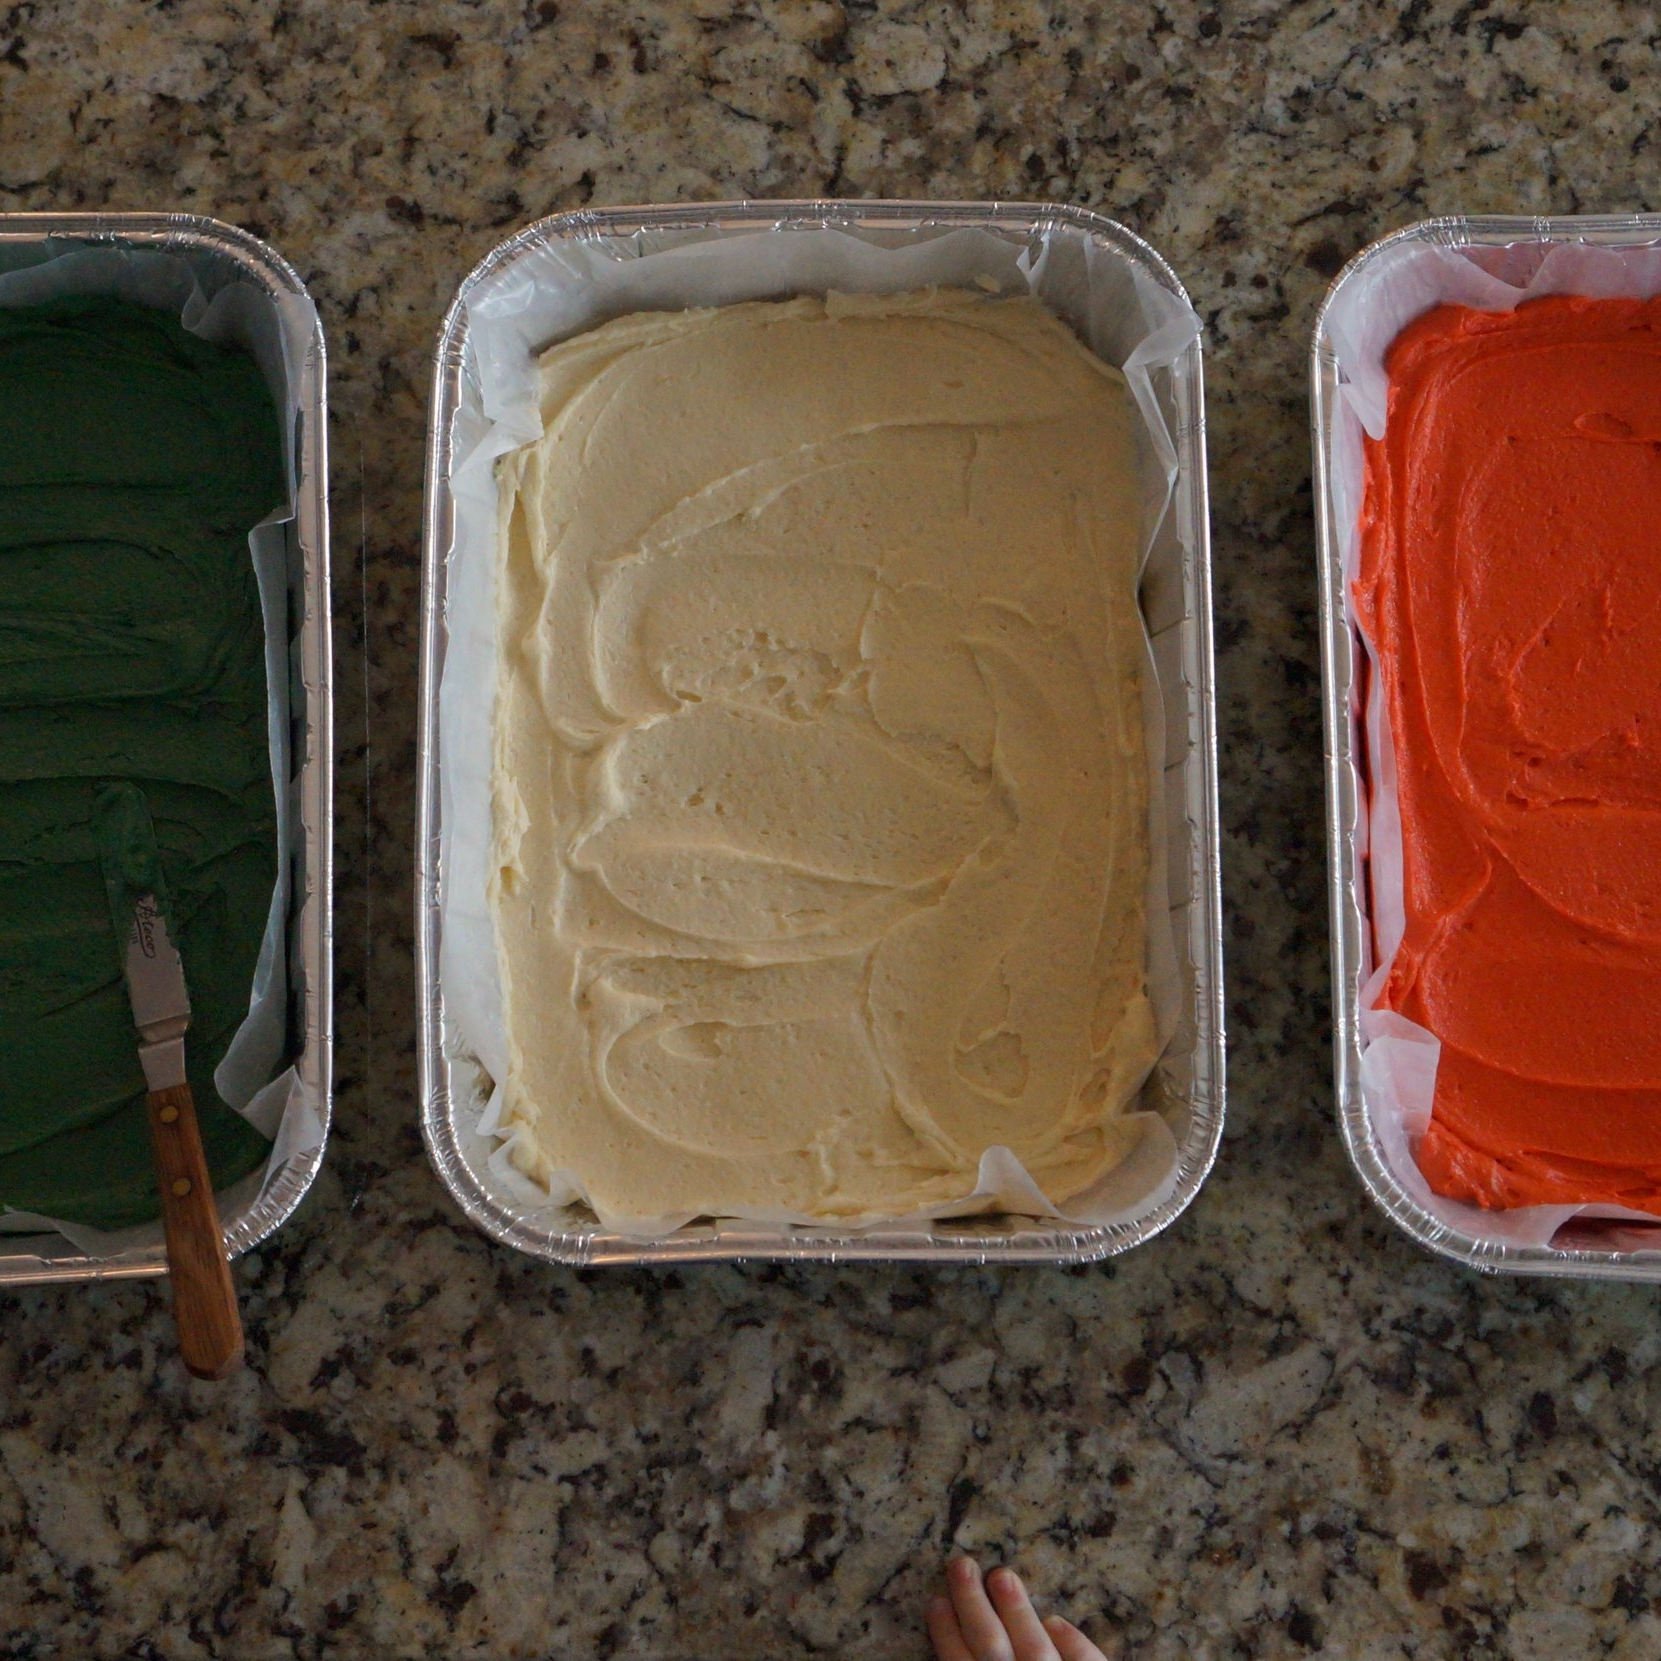 Venetian layers ready for baking.